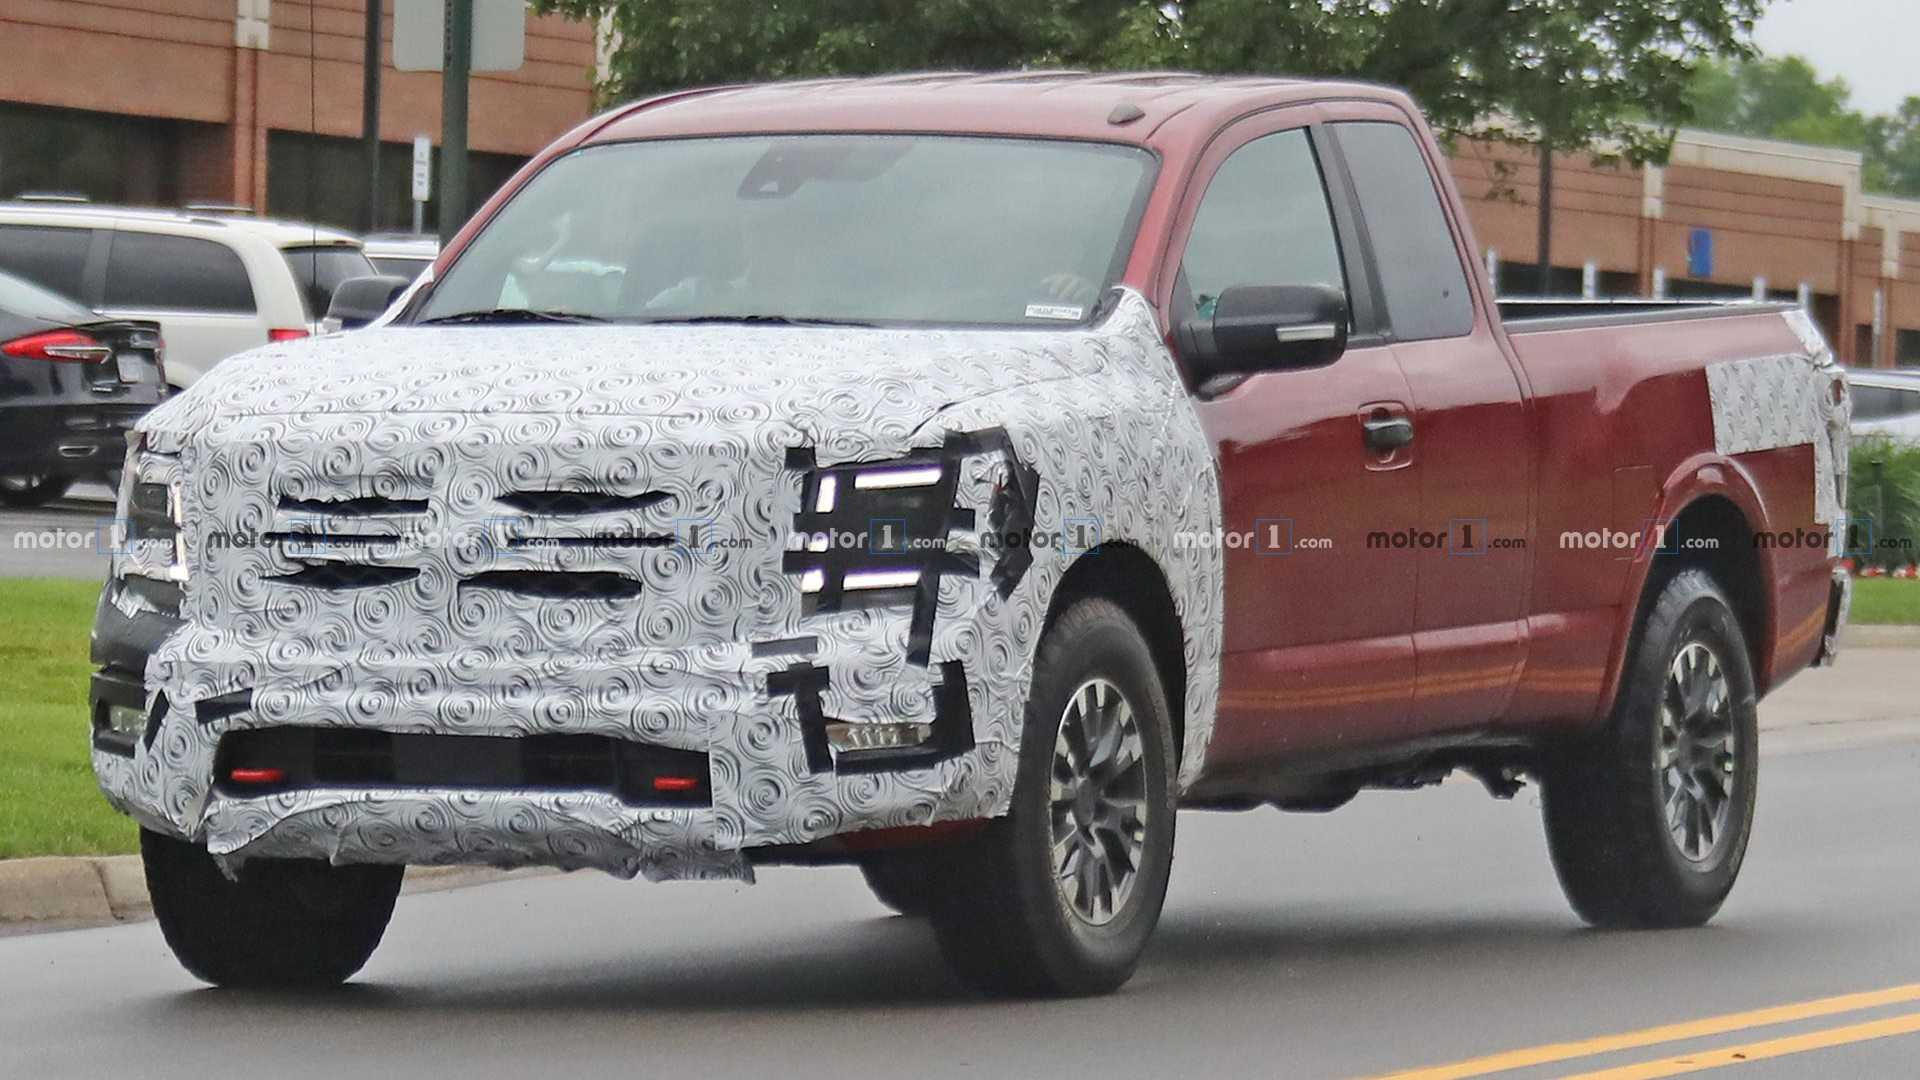 54 The Best Nissan Titan Xd 2020 Price And Review